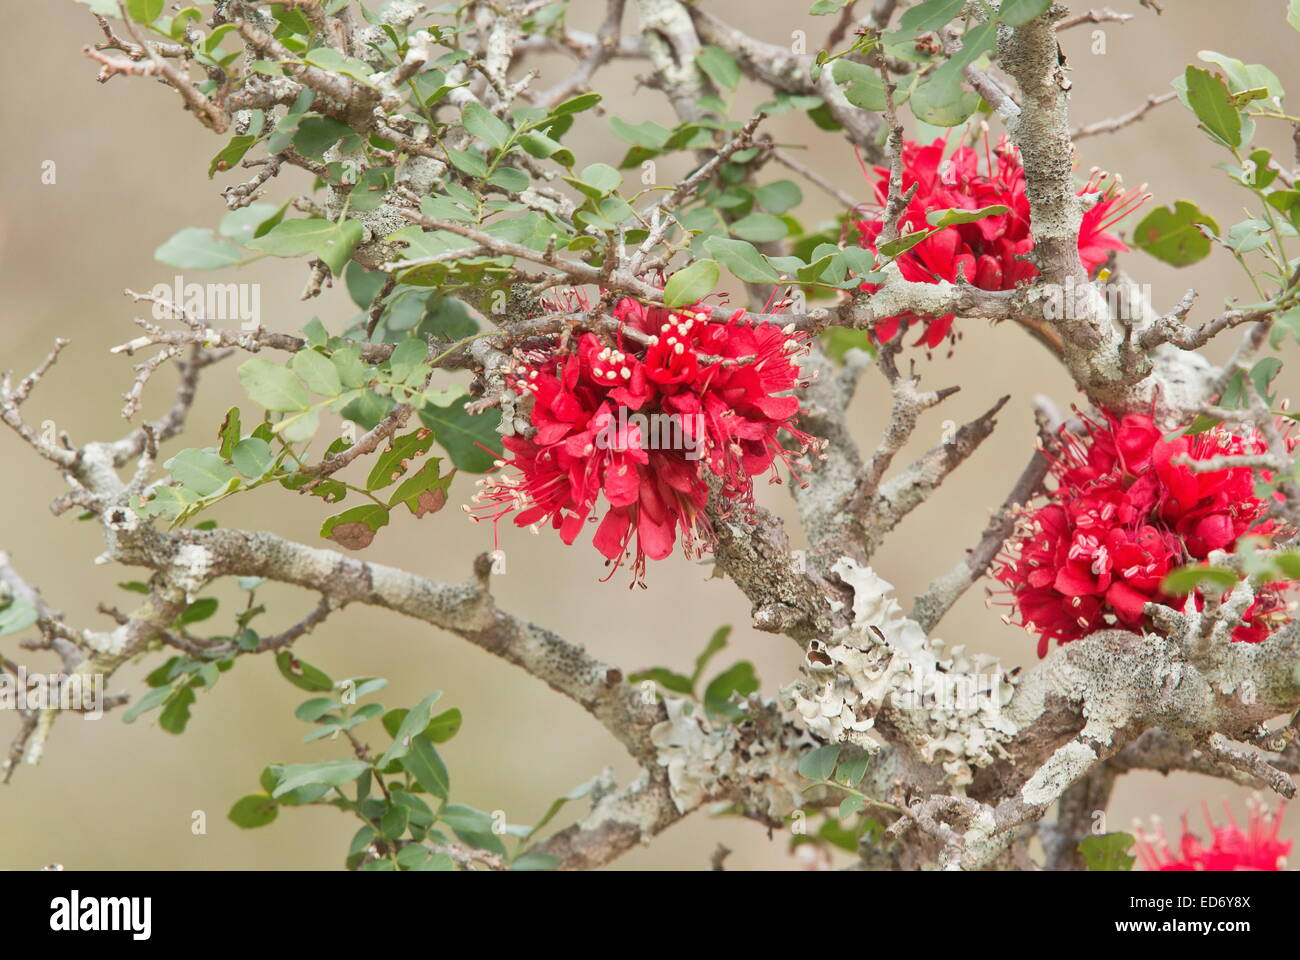 Drunk Parrot Tree, Weeping boerbean,  Schotia brachypetala, Kruger National Park, South Africa - Stock Image